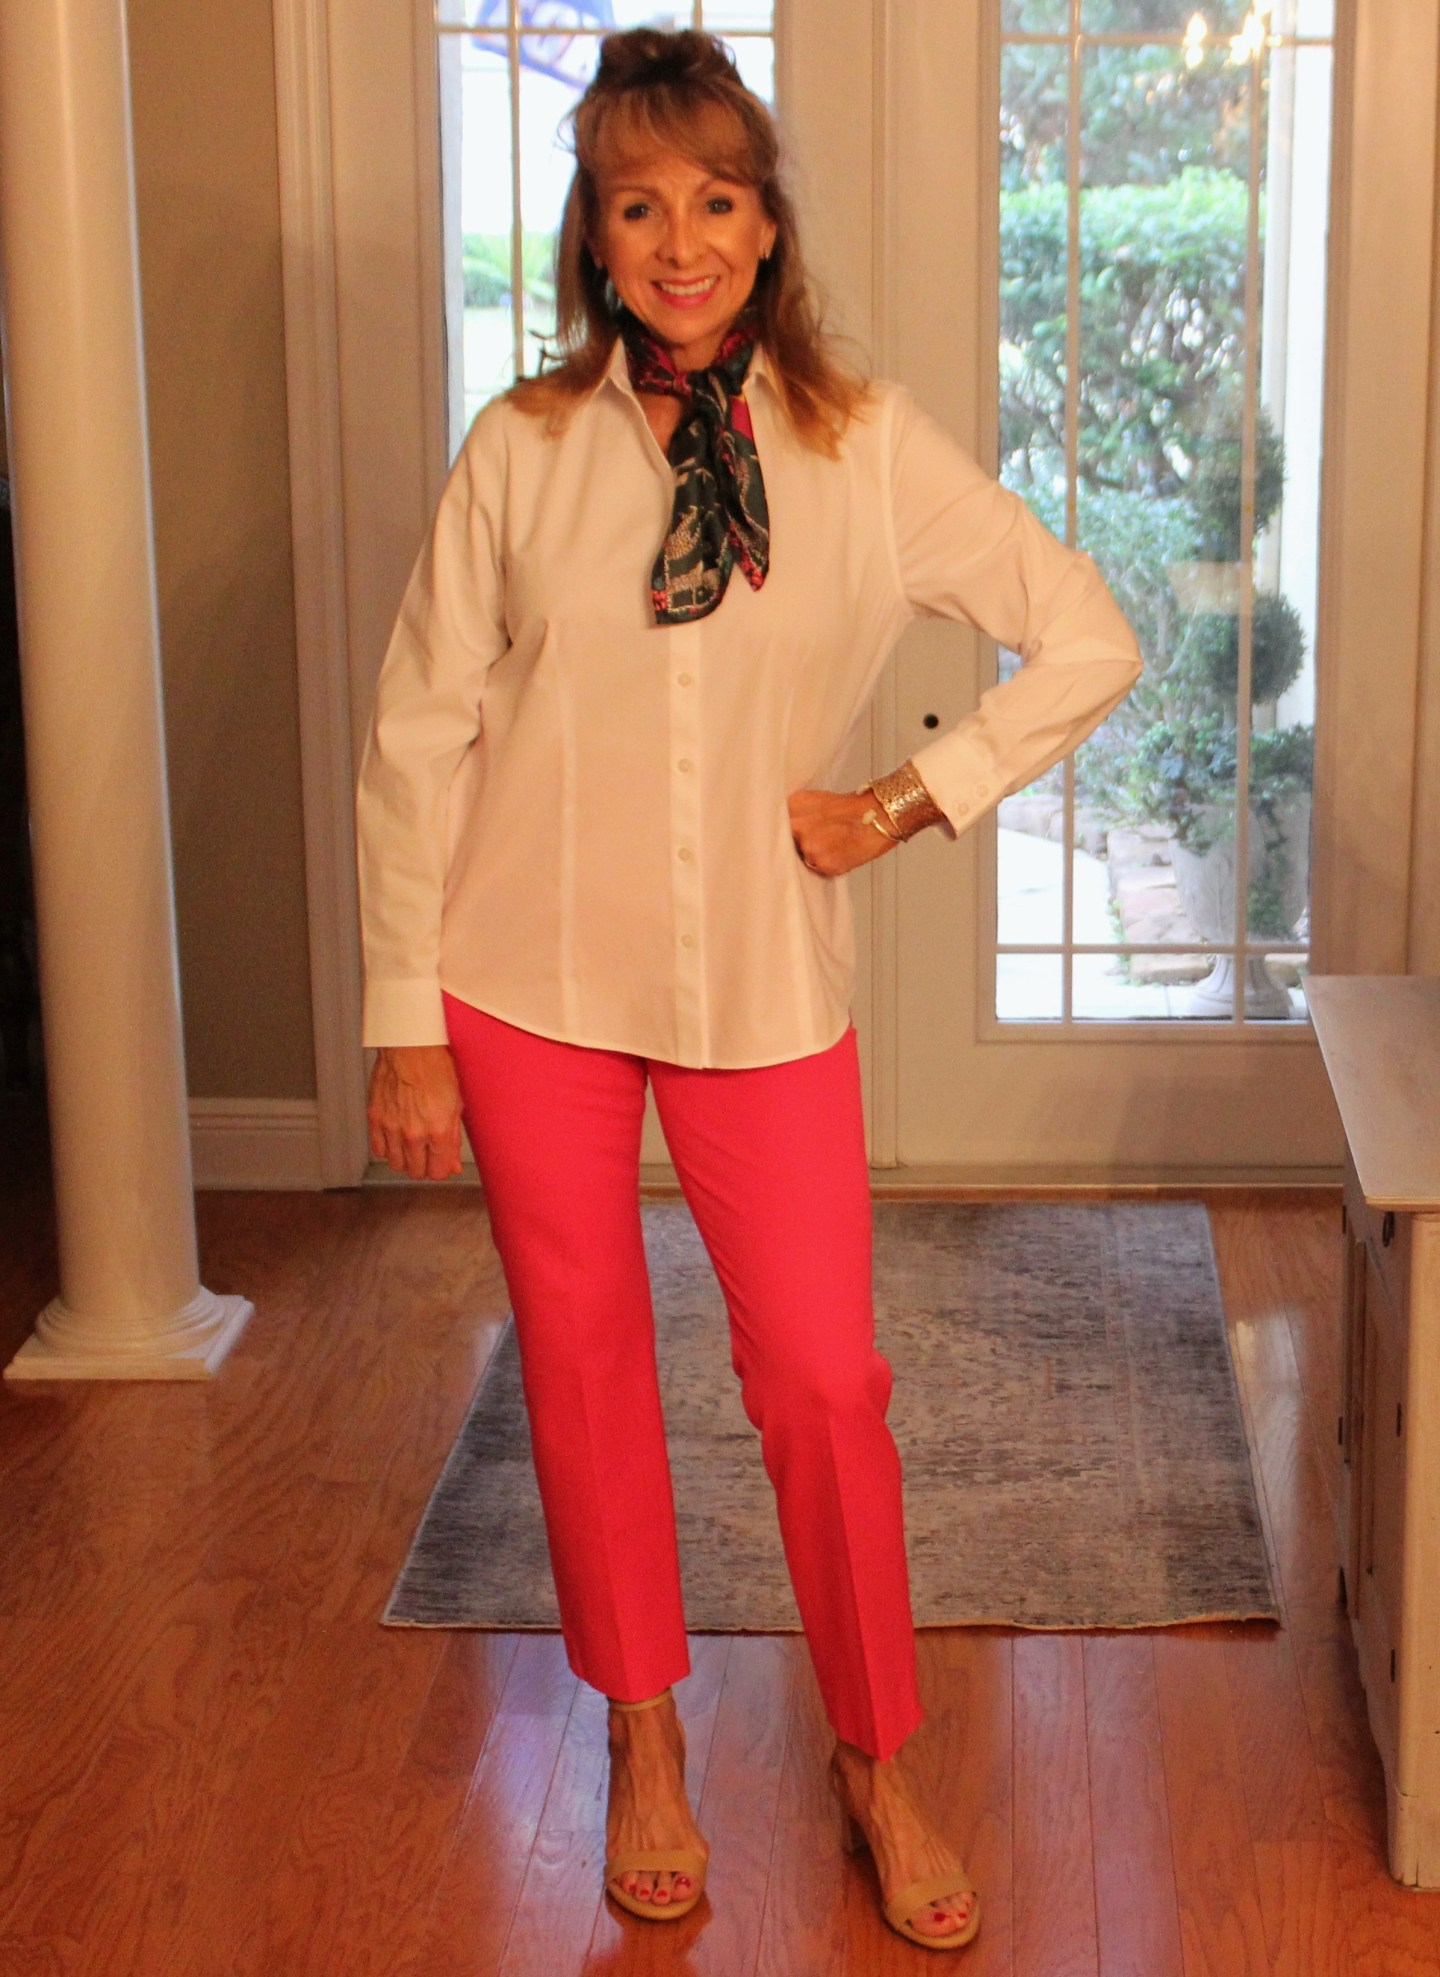 Chico's white shirt + JCrew Hot Pink Pants + Sarah Flint Perfect Sandals